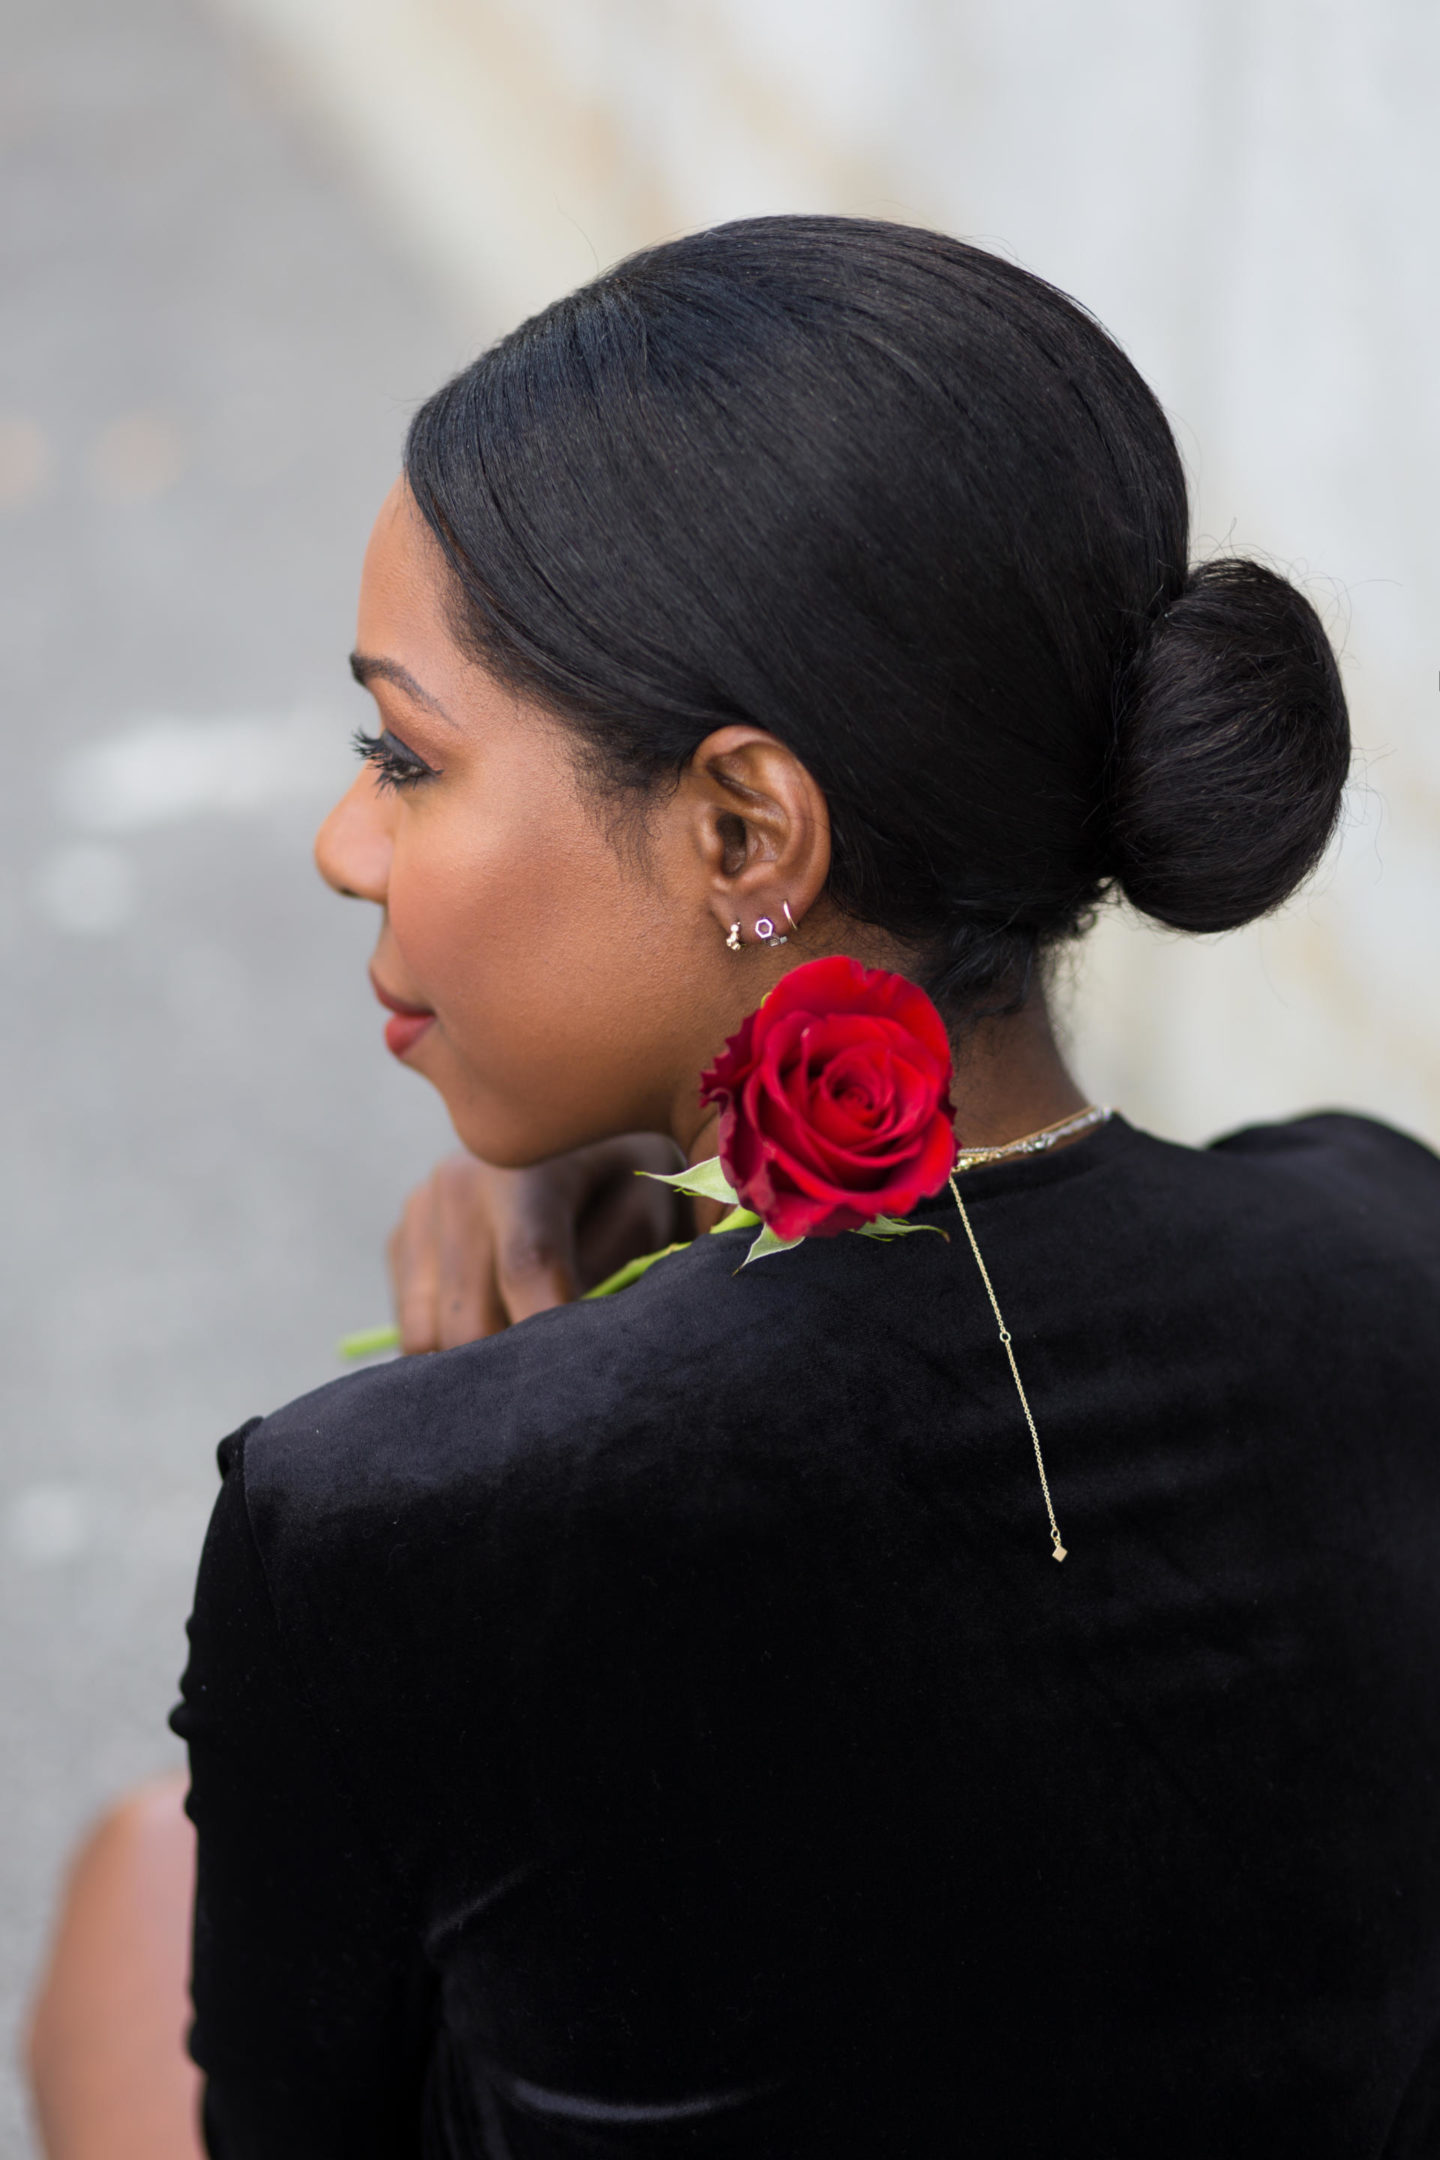 Dominique Baker holding a red rose while wearing a black dress